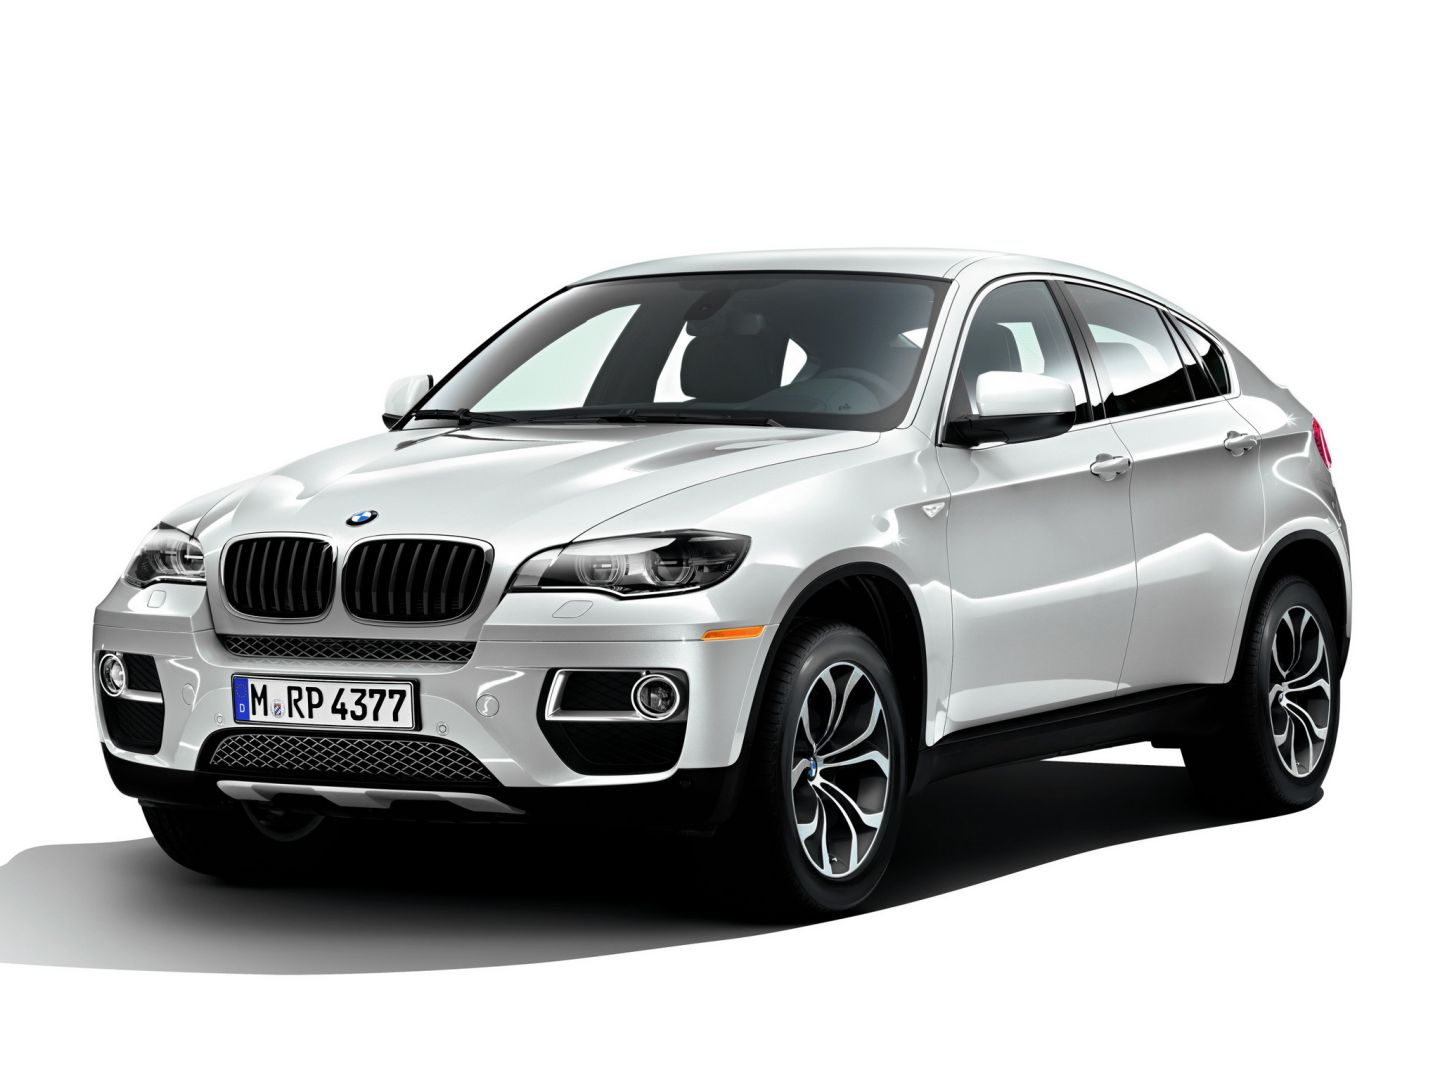 bmw x6 e71 specs 2010 2011 2012 2013 2014 autoevolution. Black Bedroom Furniture Sets. Home Design Ideas